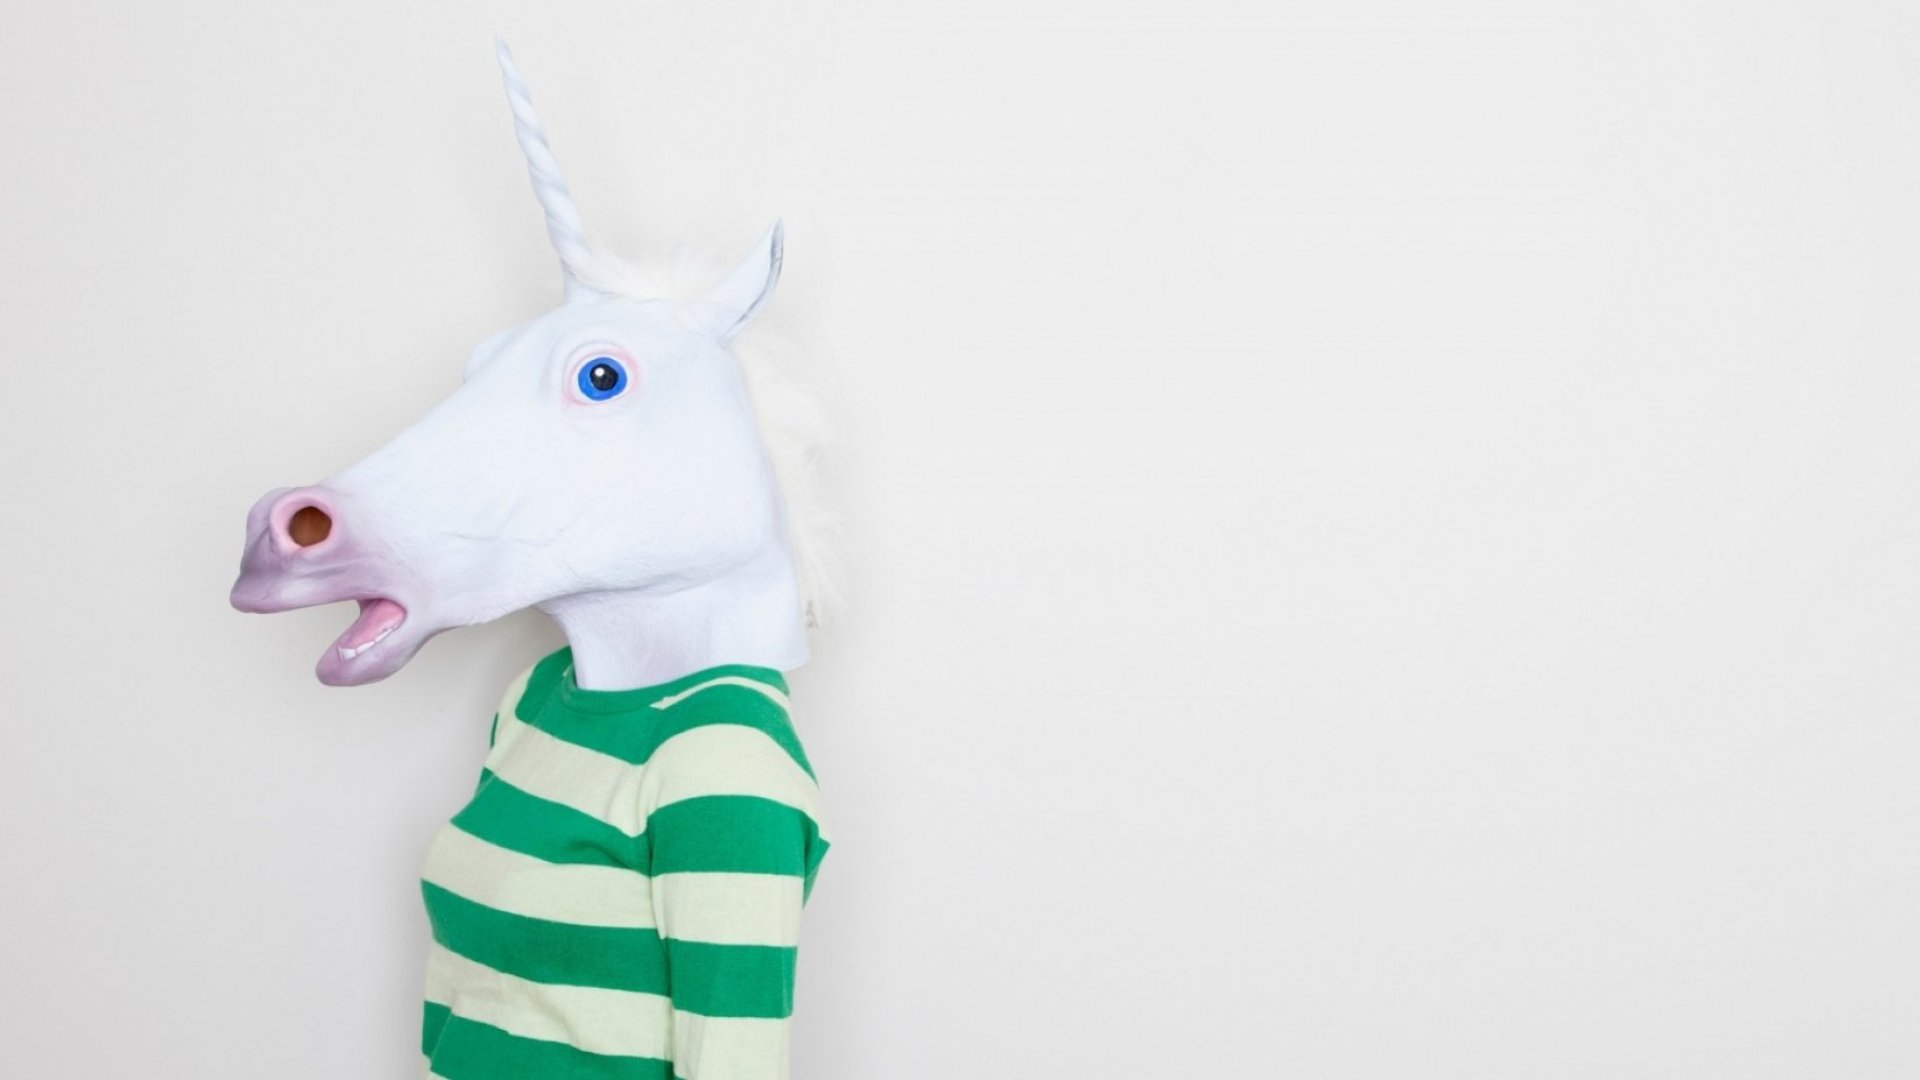 5 Personality Traits That Could Make Your Company a Unicorn